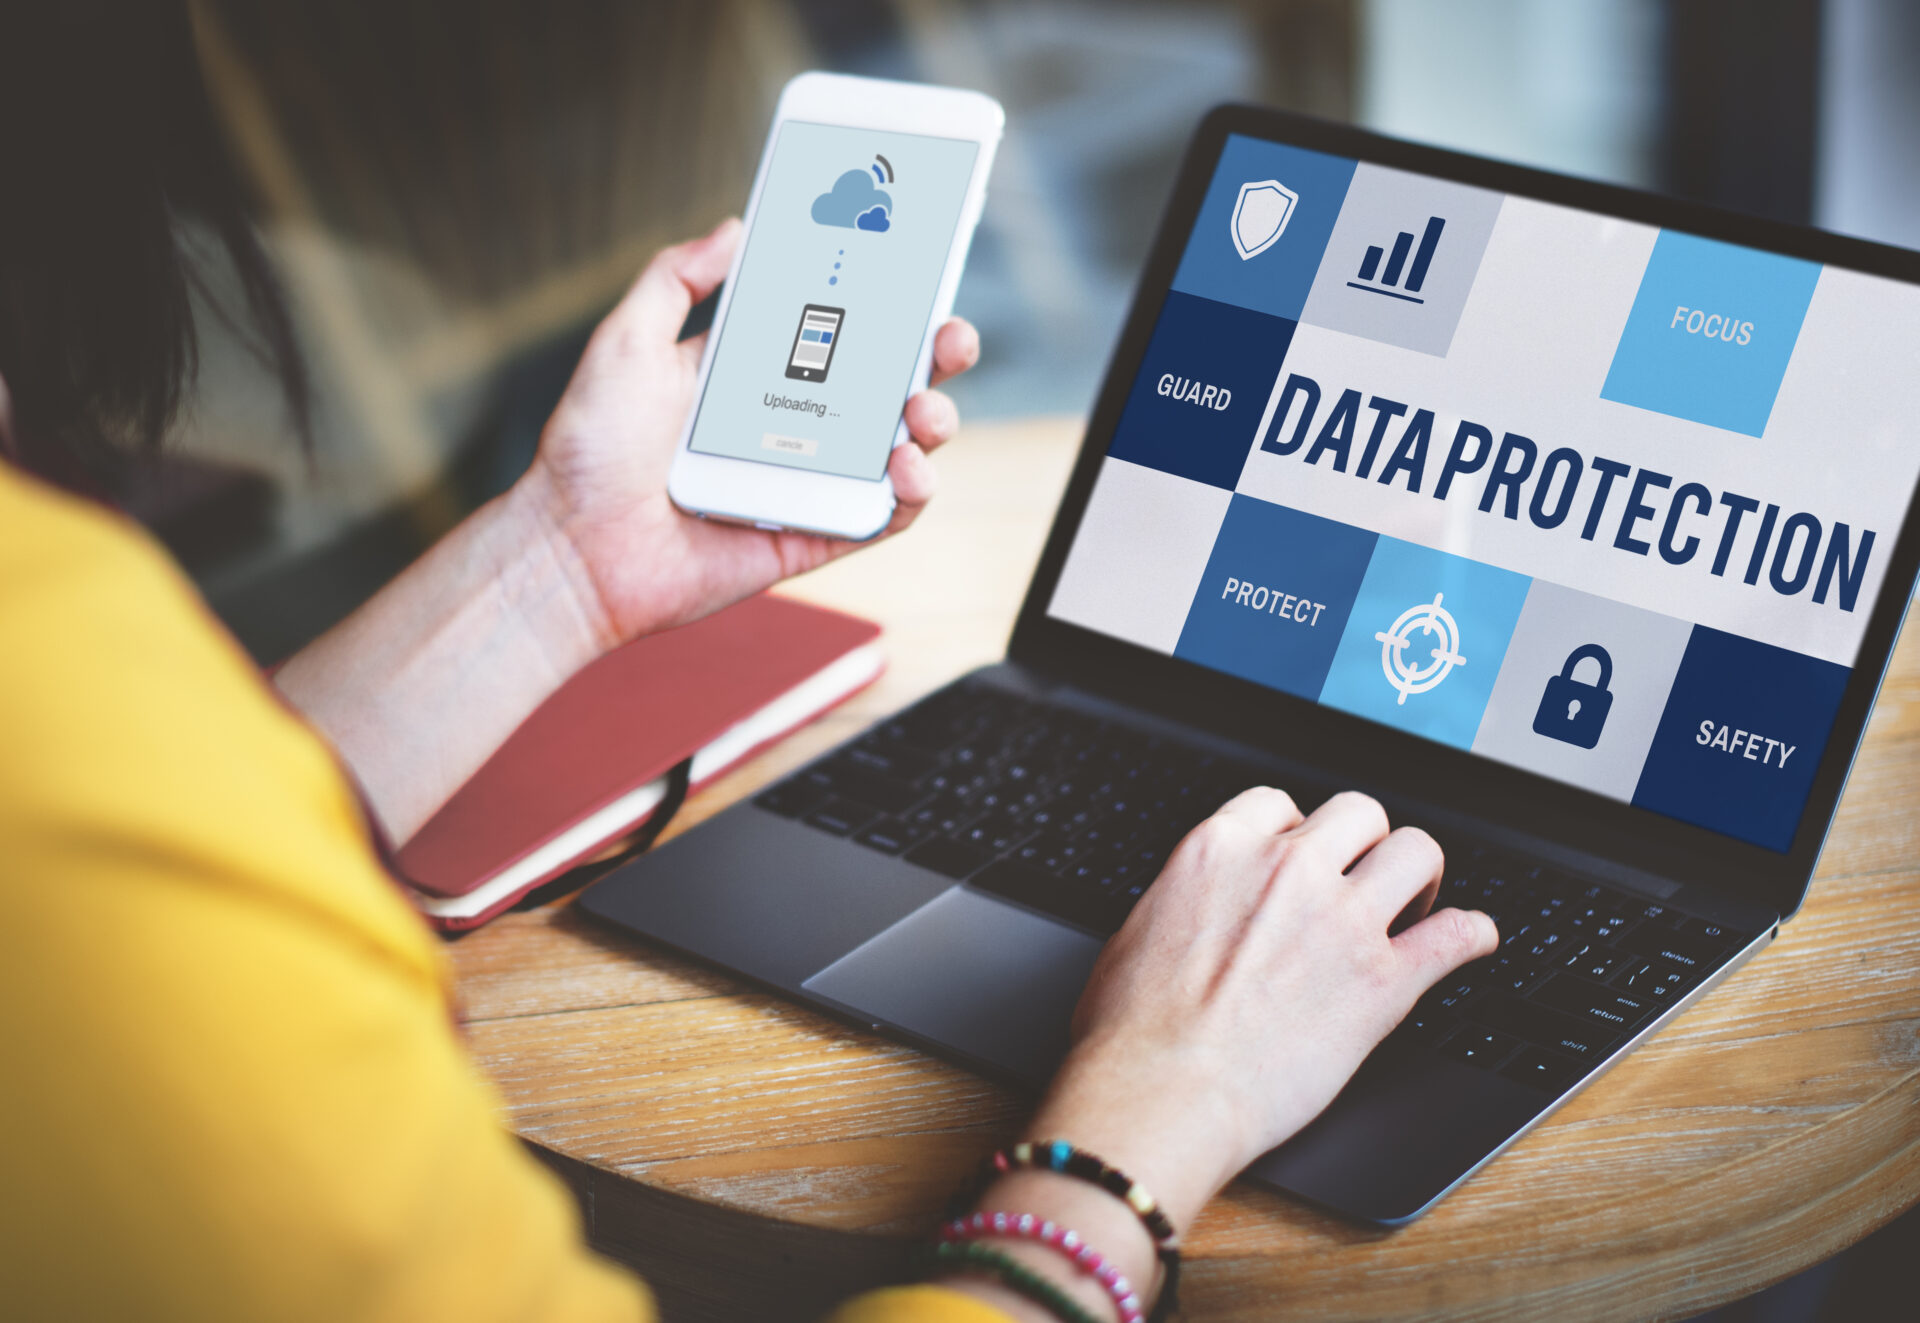 Brussels Health Network - Data protection